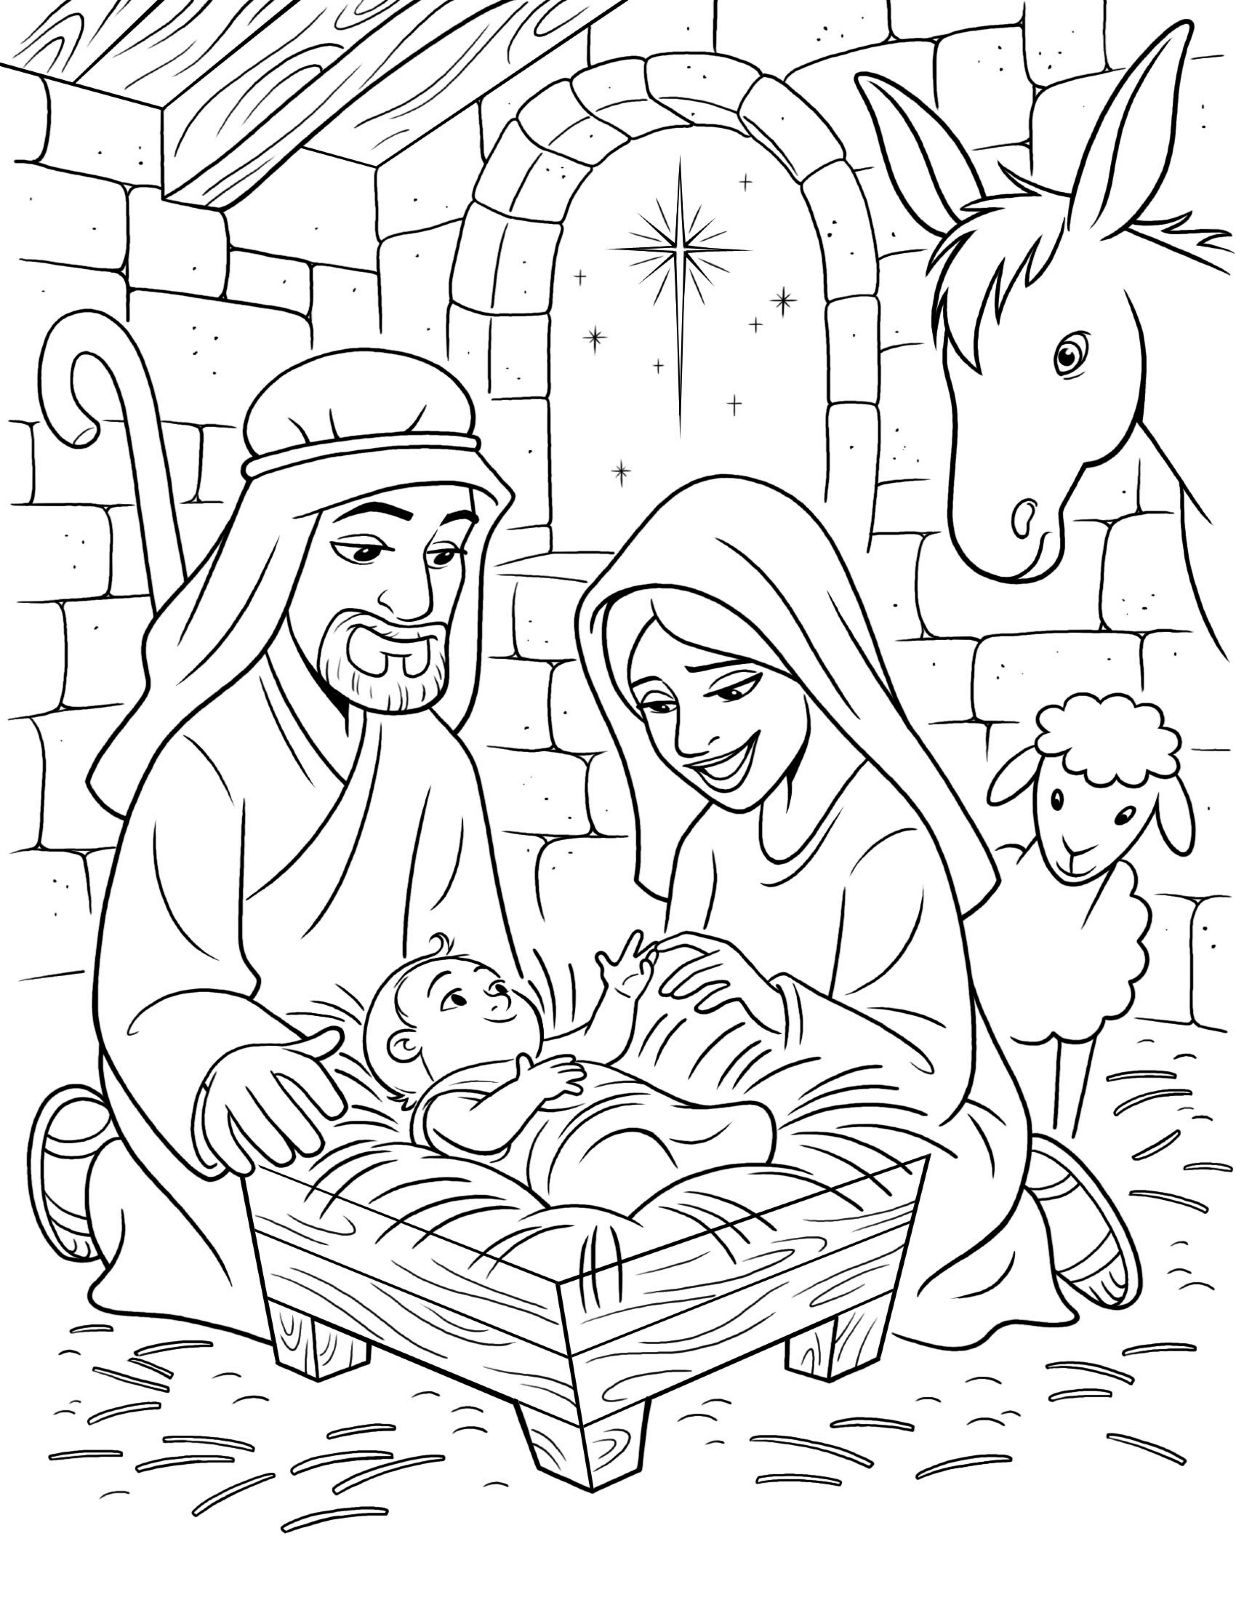 Lds Coloring Pages With The Birth Of Christ | Coloring For Kids ...